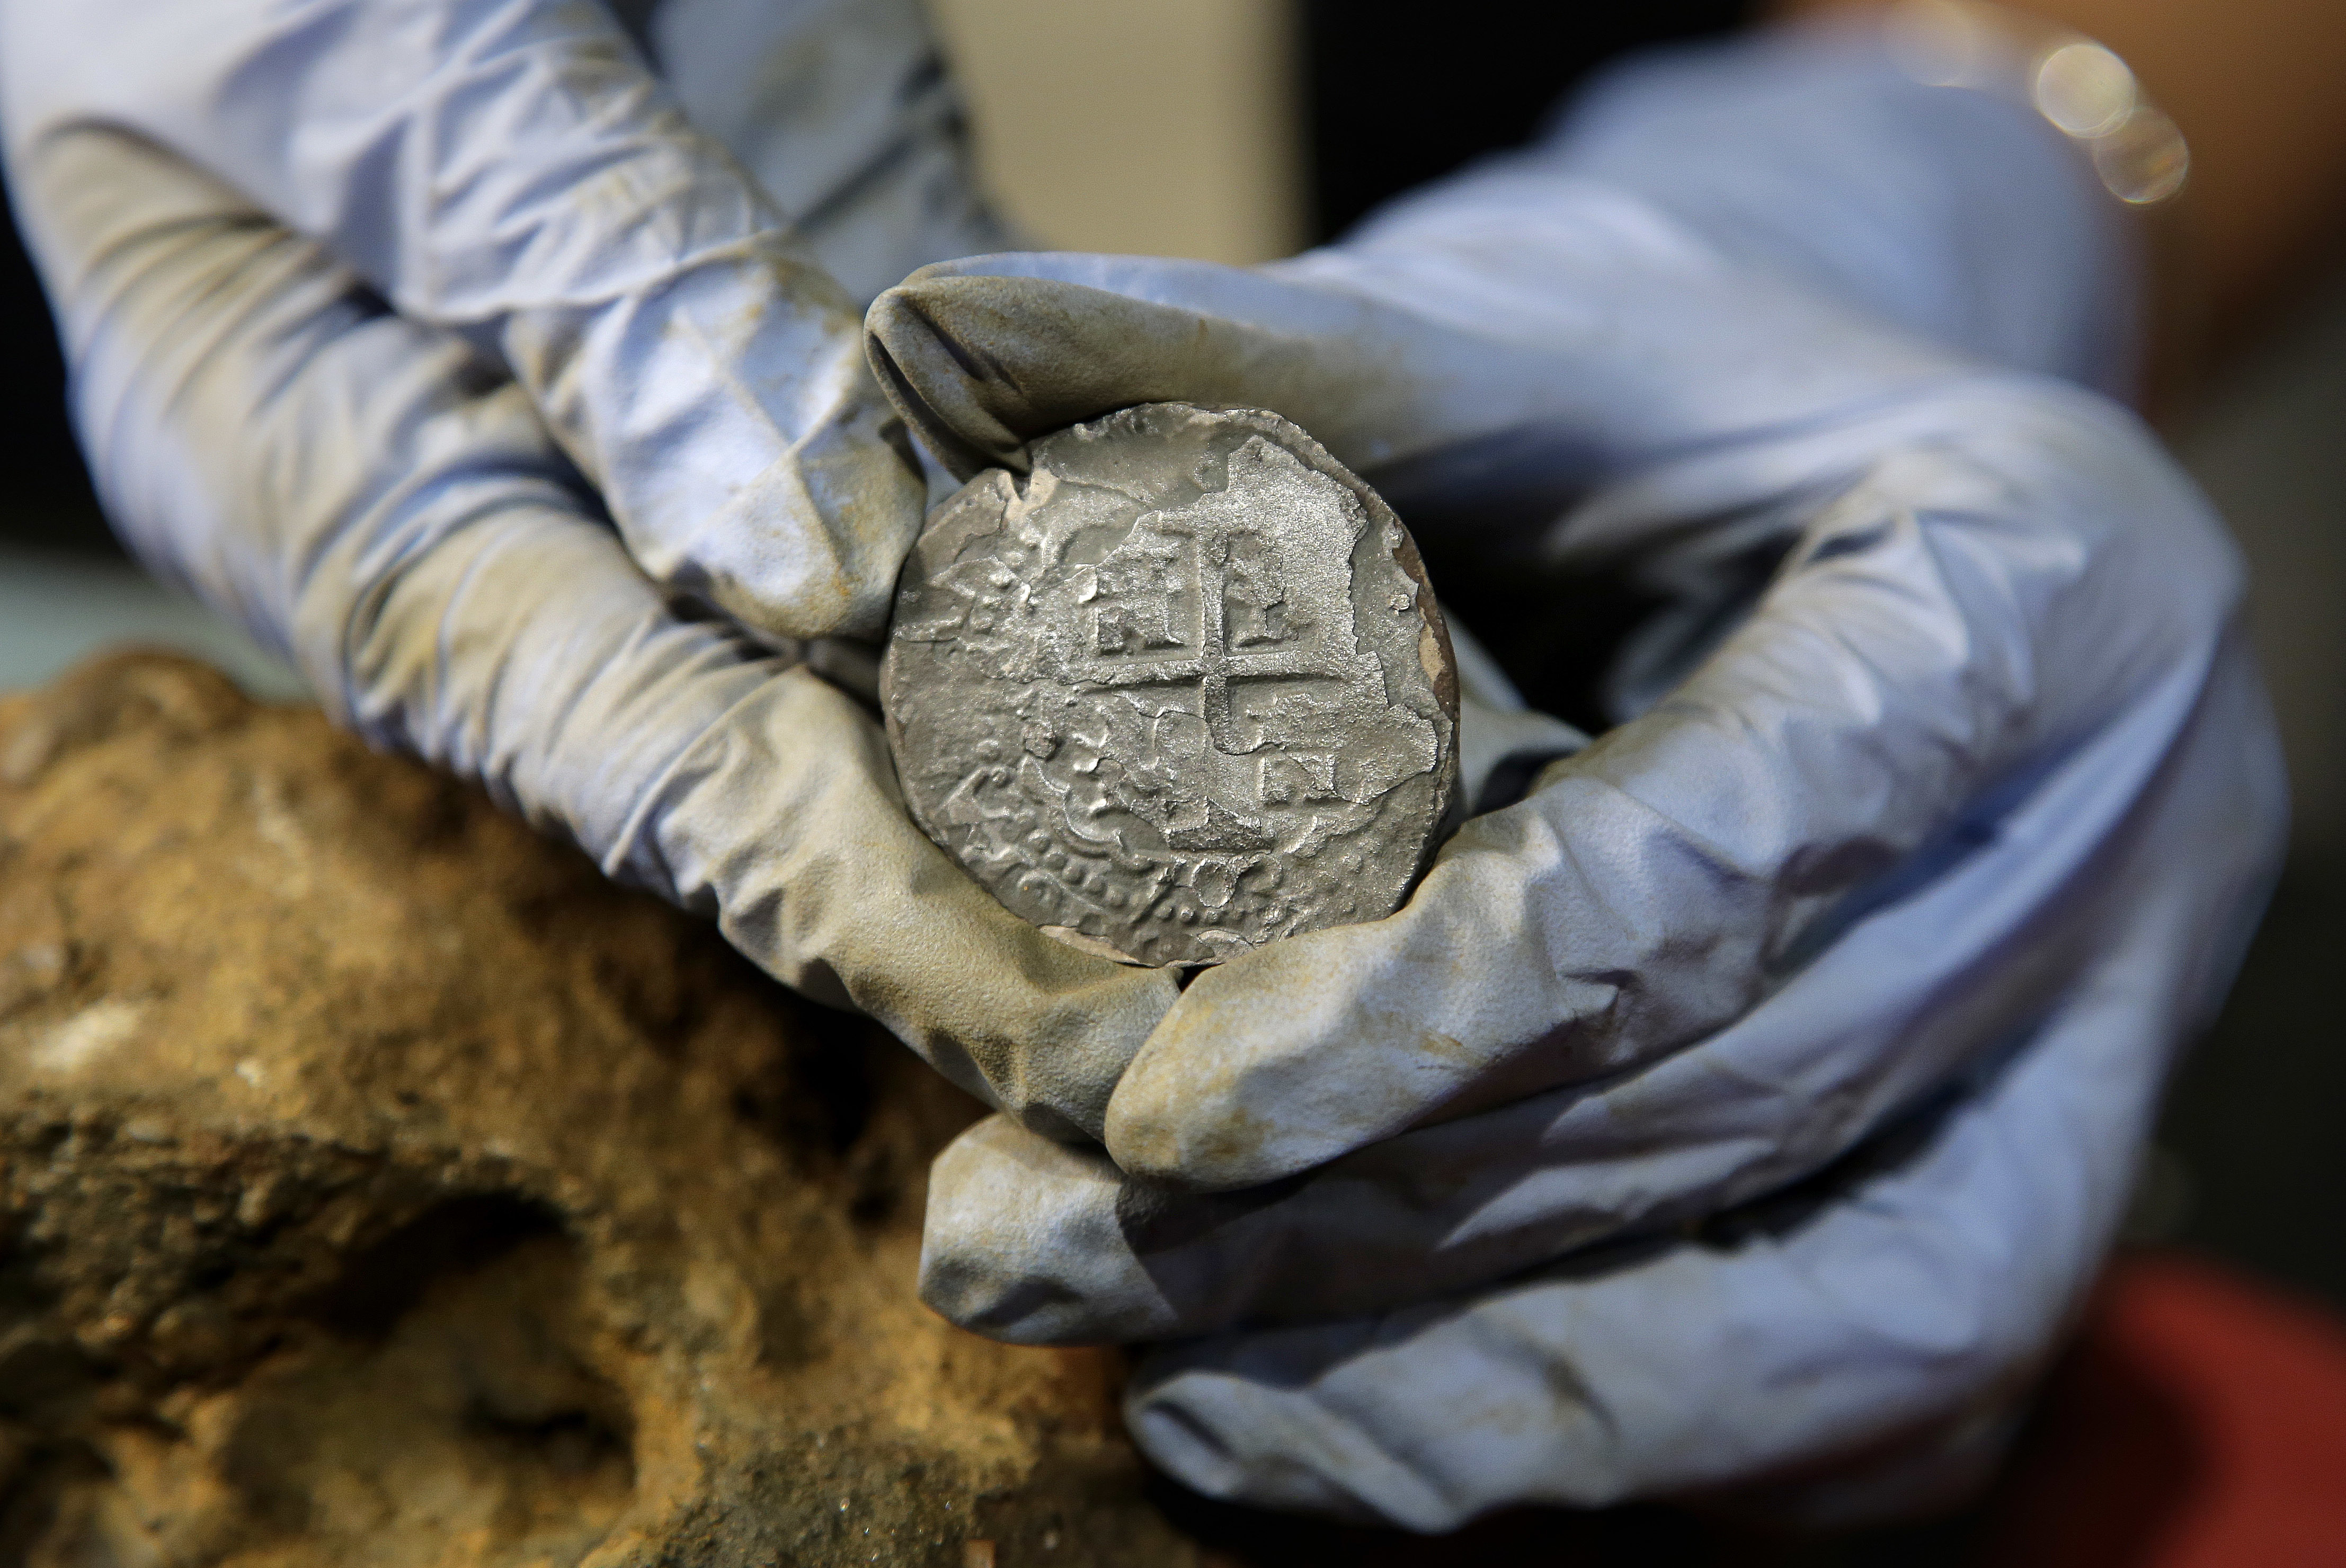 This silver coin was found on the pirate ship in 2016